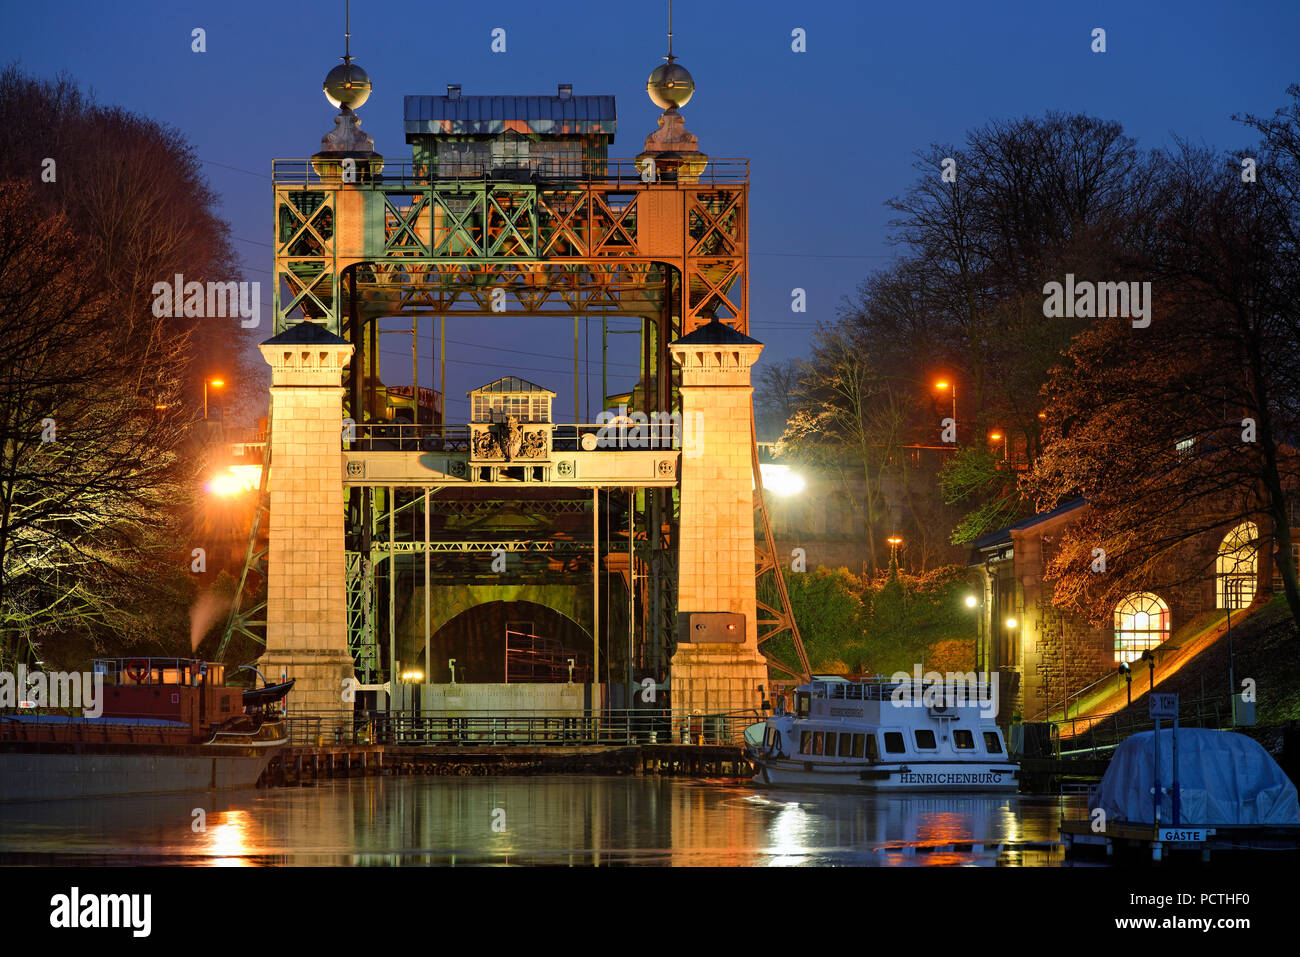 LWL - Industrial Museum, Henrichenburg boat lift on the Dortmund-Ems Canal in evening light, Waltrop - Oberwiese, North Rhine-Westphalia, Germany - Stock Image